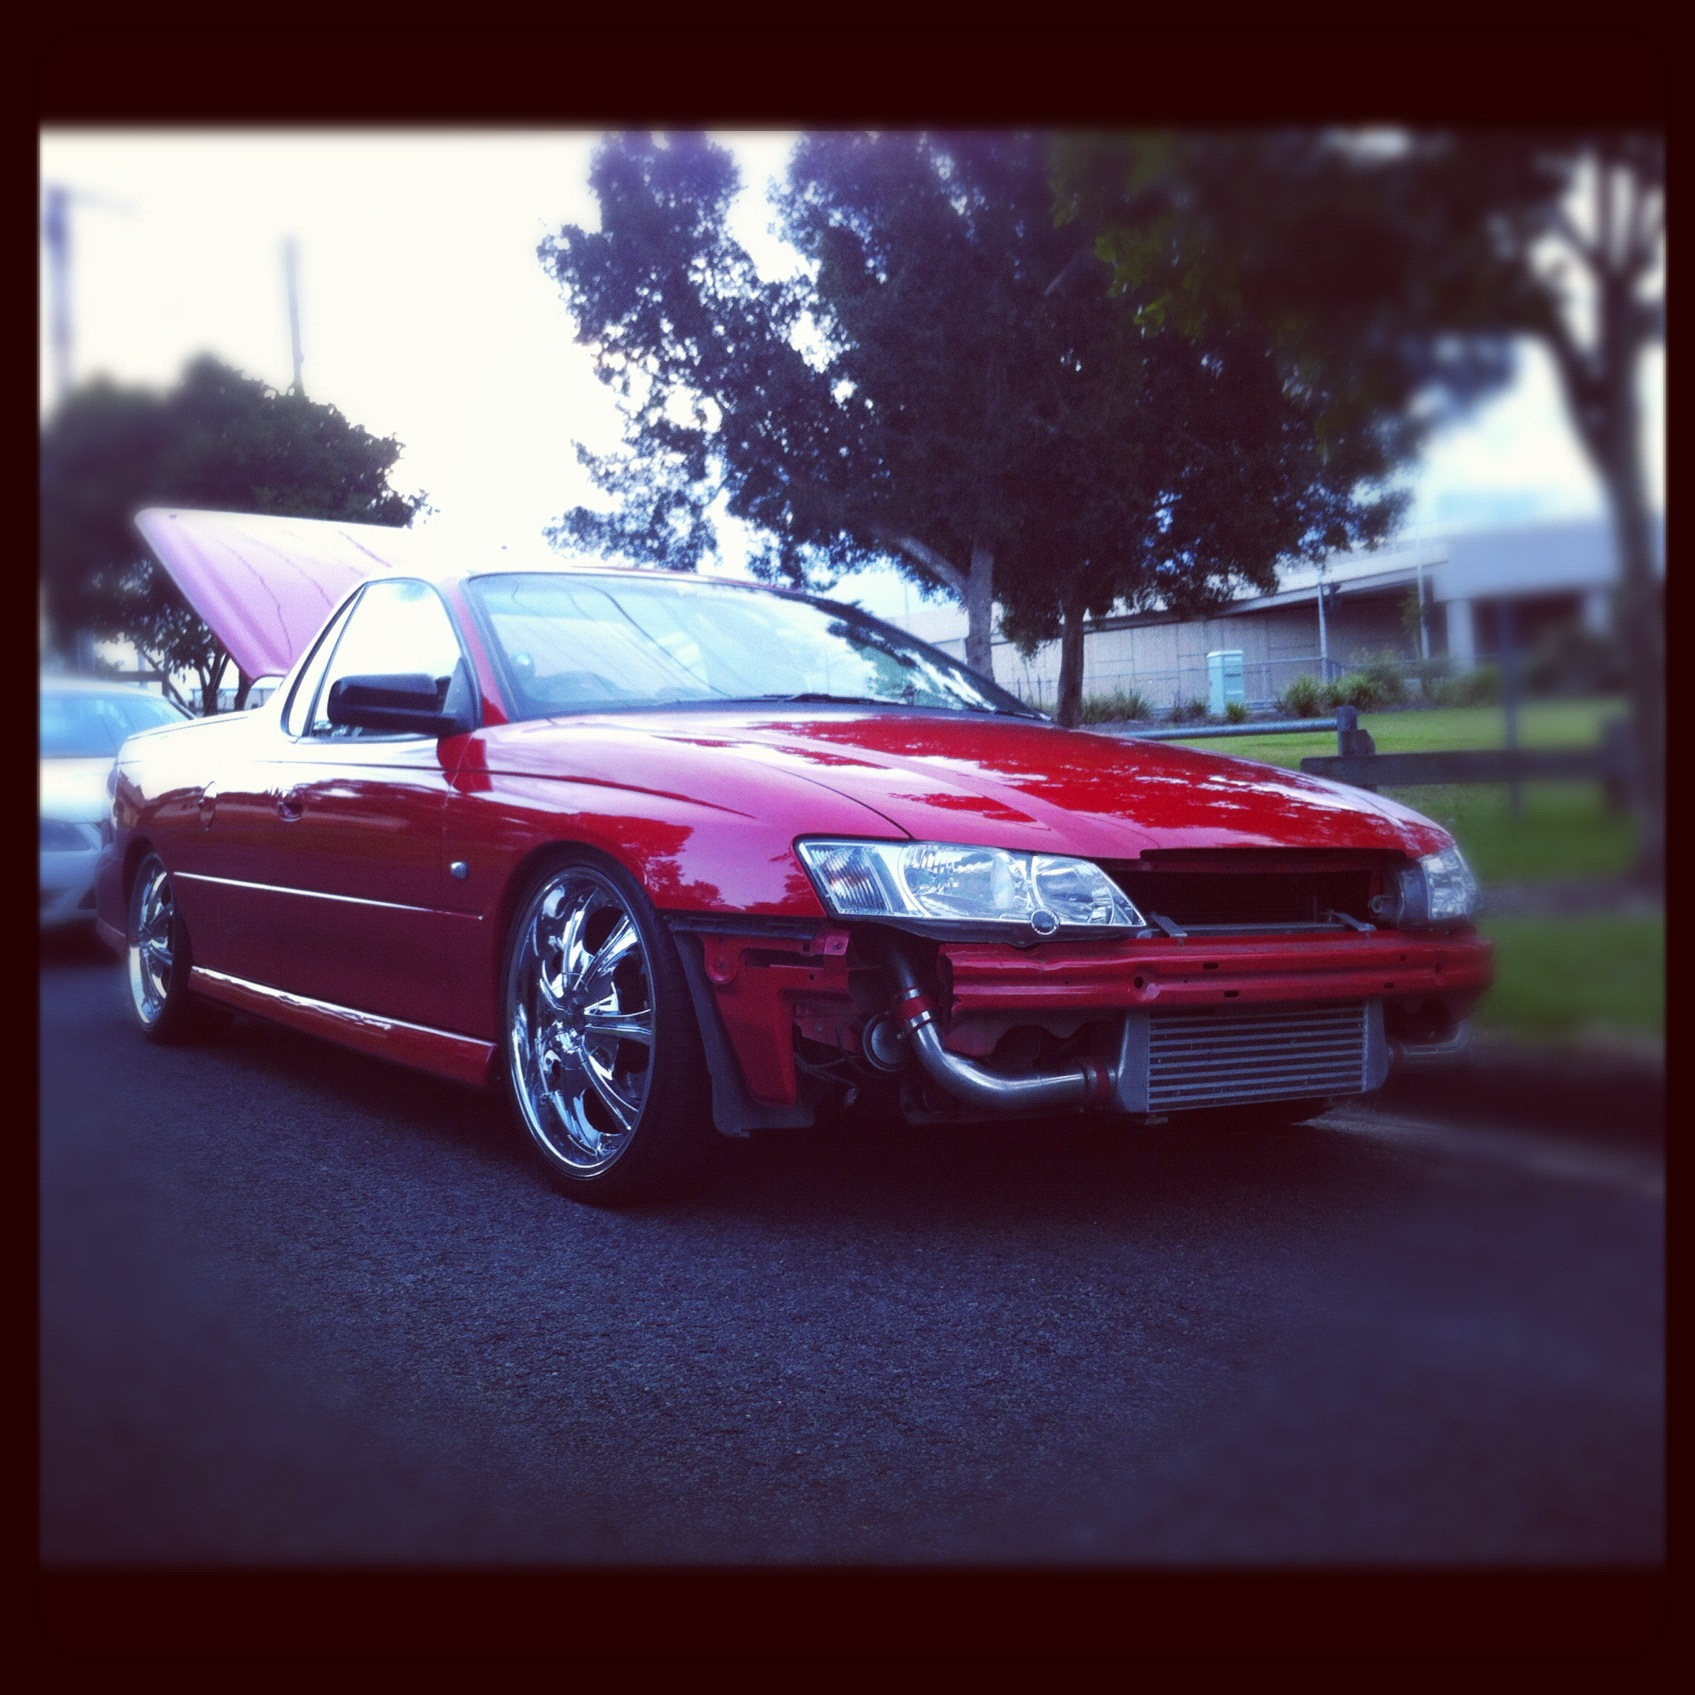 Vortech Supercharger Rebuild Price: 2004 Holden Commodore Storm VY